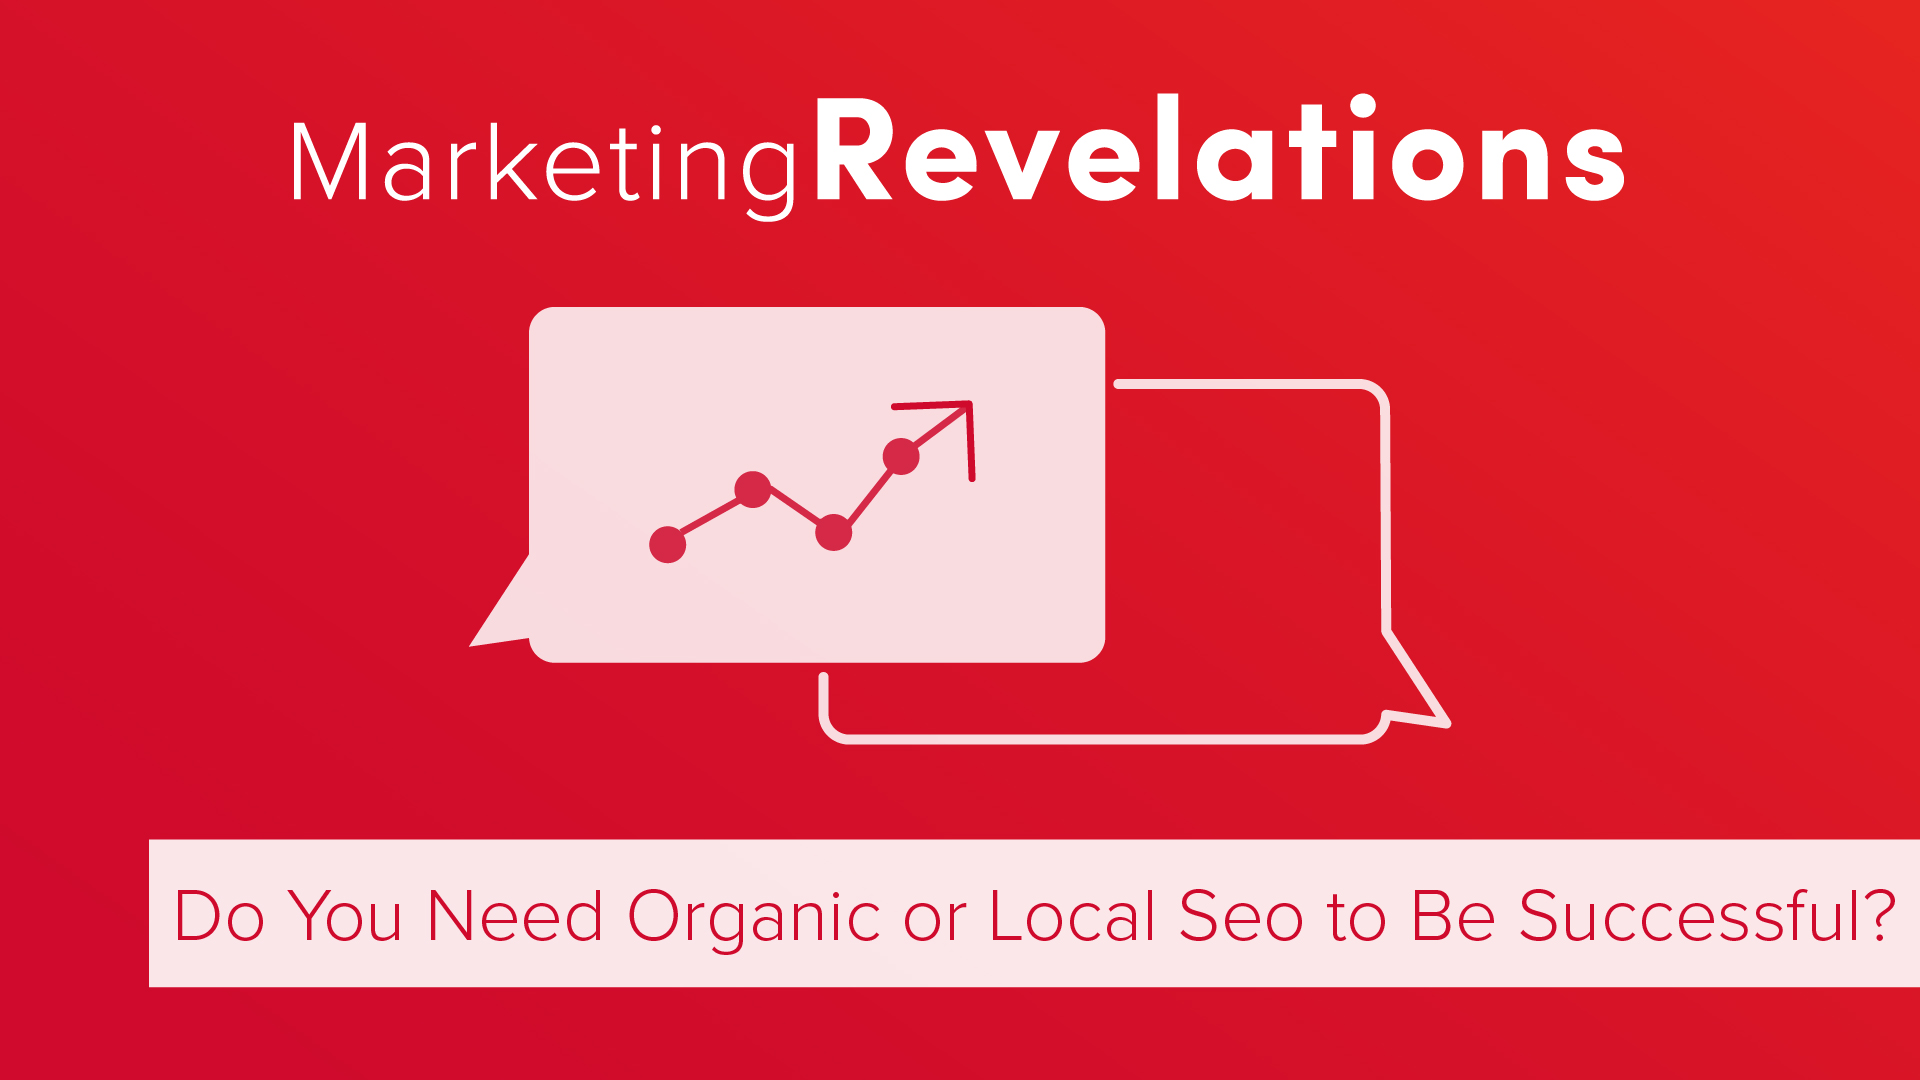 Do You Need Organic or Local SEO to Be Successful?